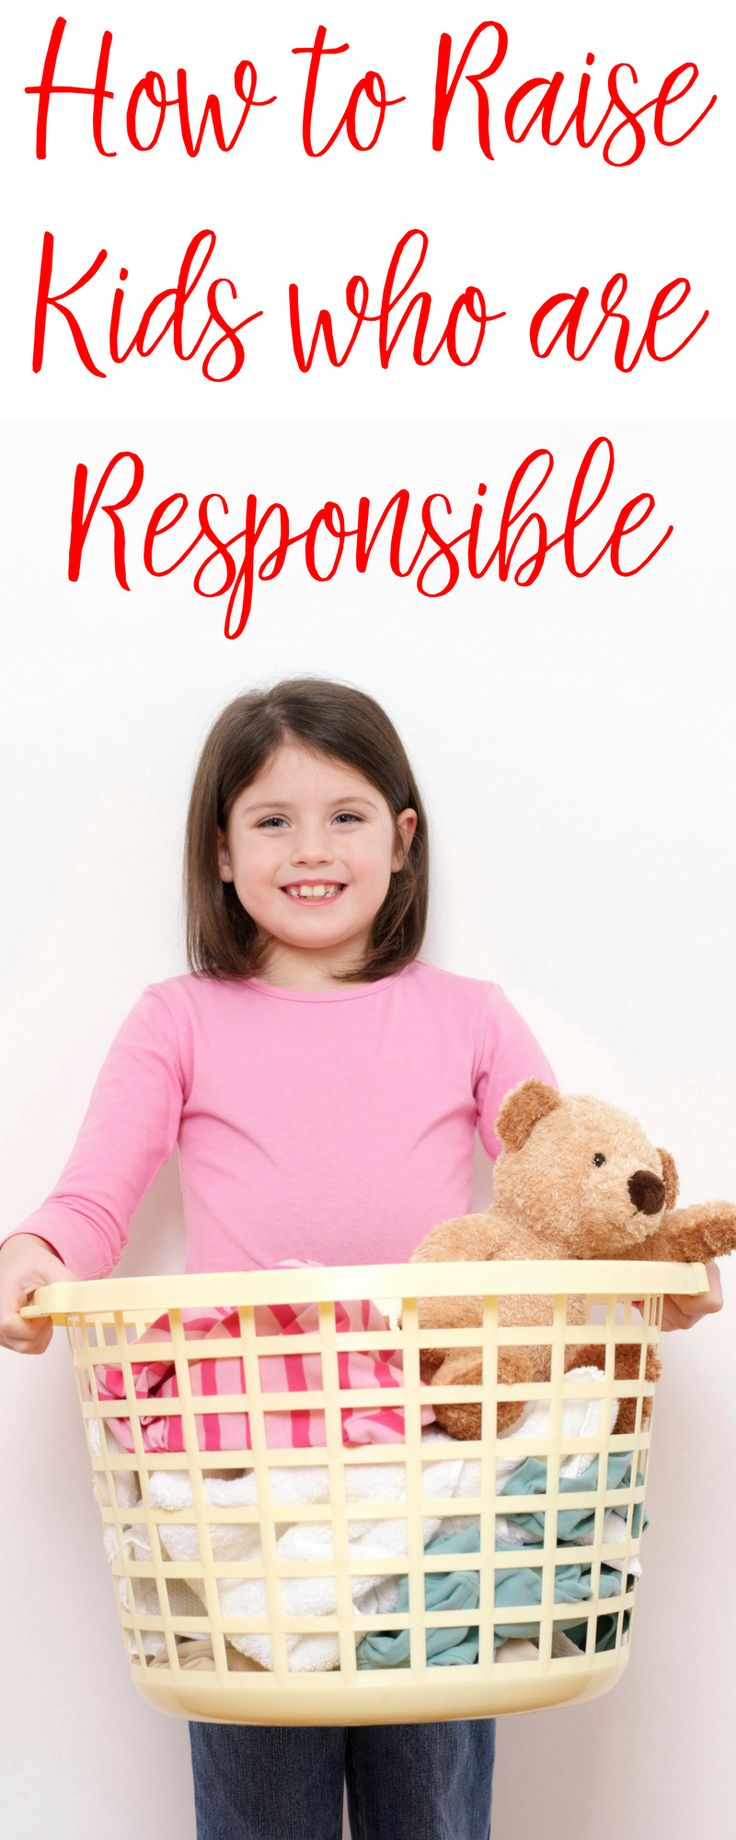 How do you raise kids who are responsible? Try one of these 5 tips. | raising responsible kids | raising kids with character | raising kids with value | raising children | raising children with character | raising responsible children